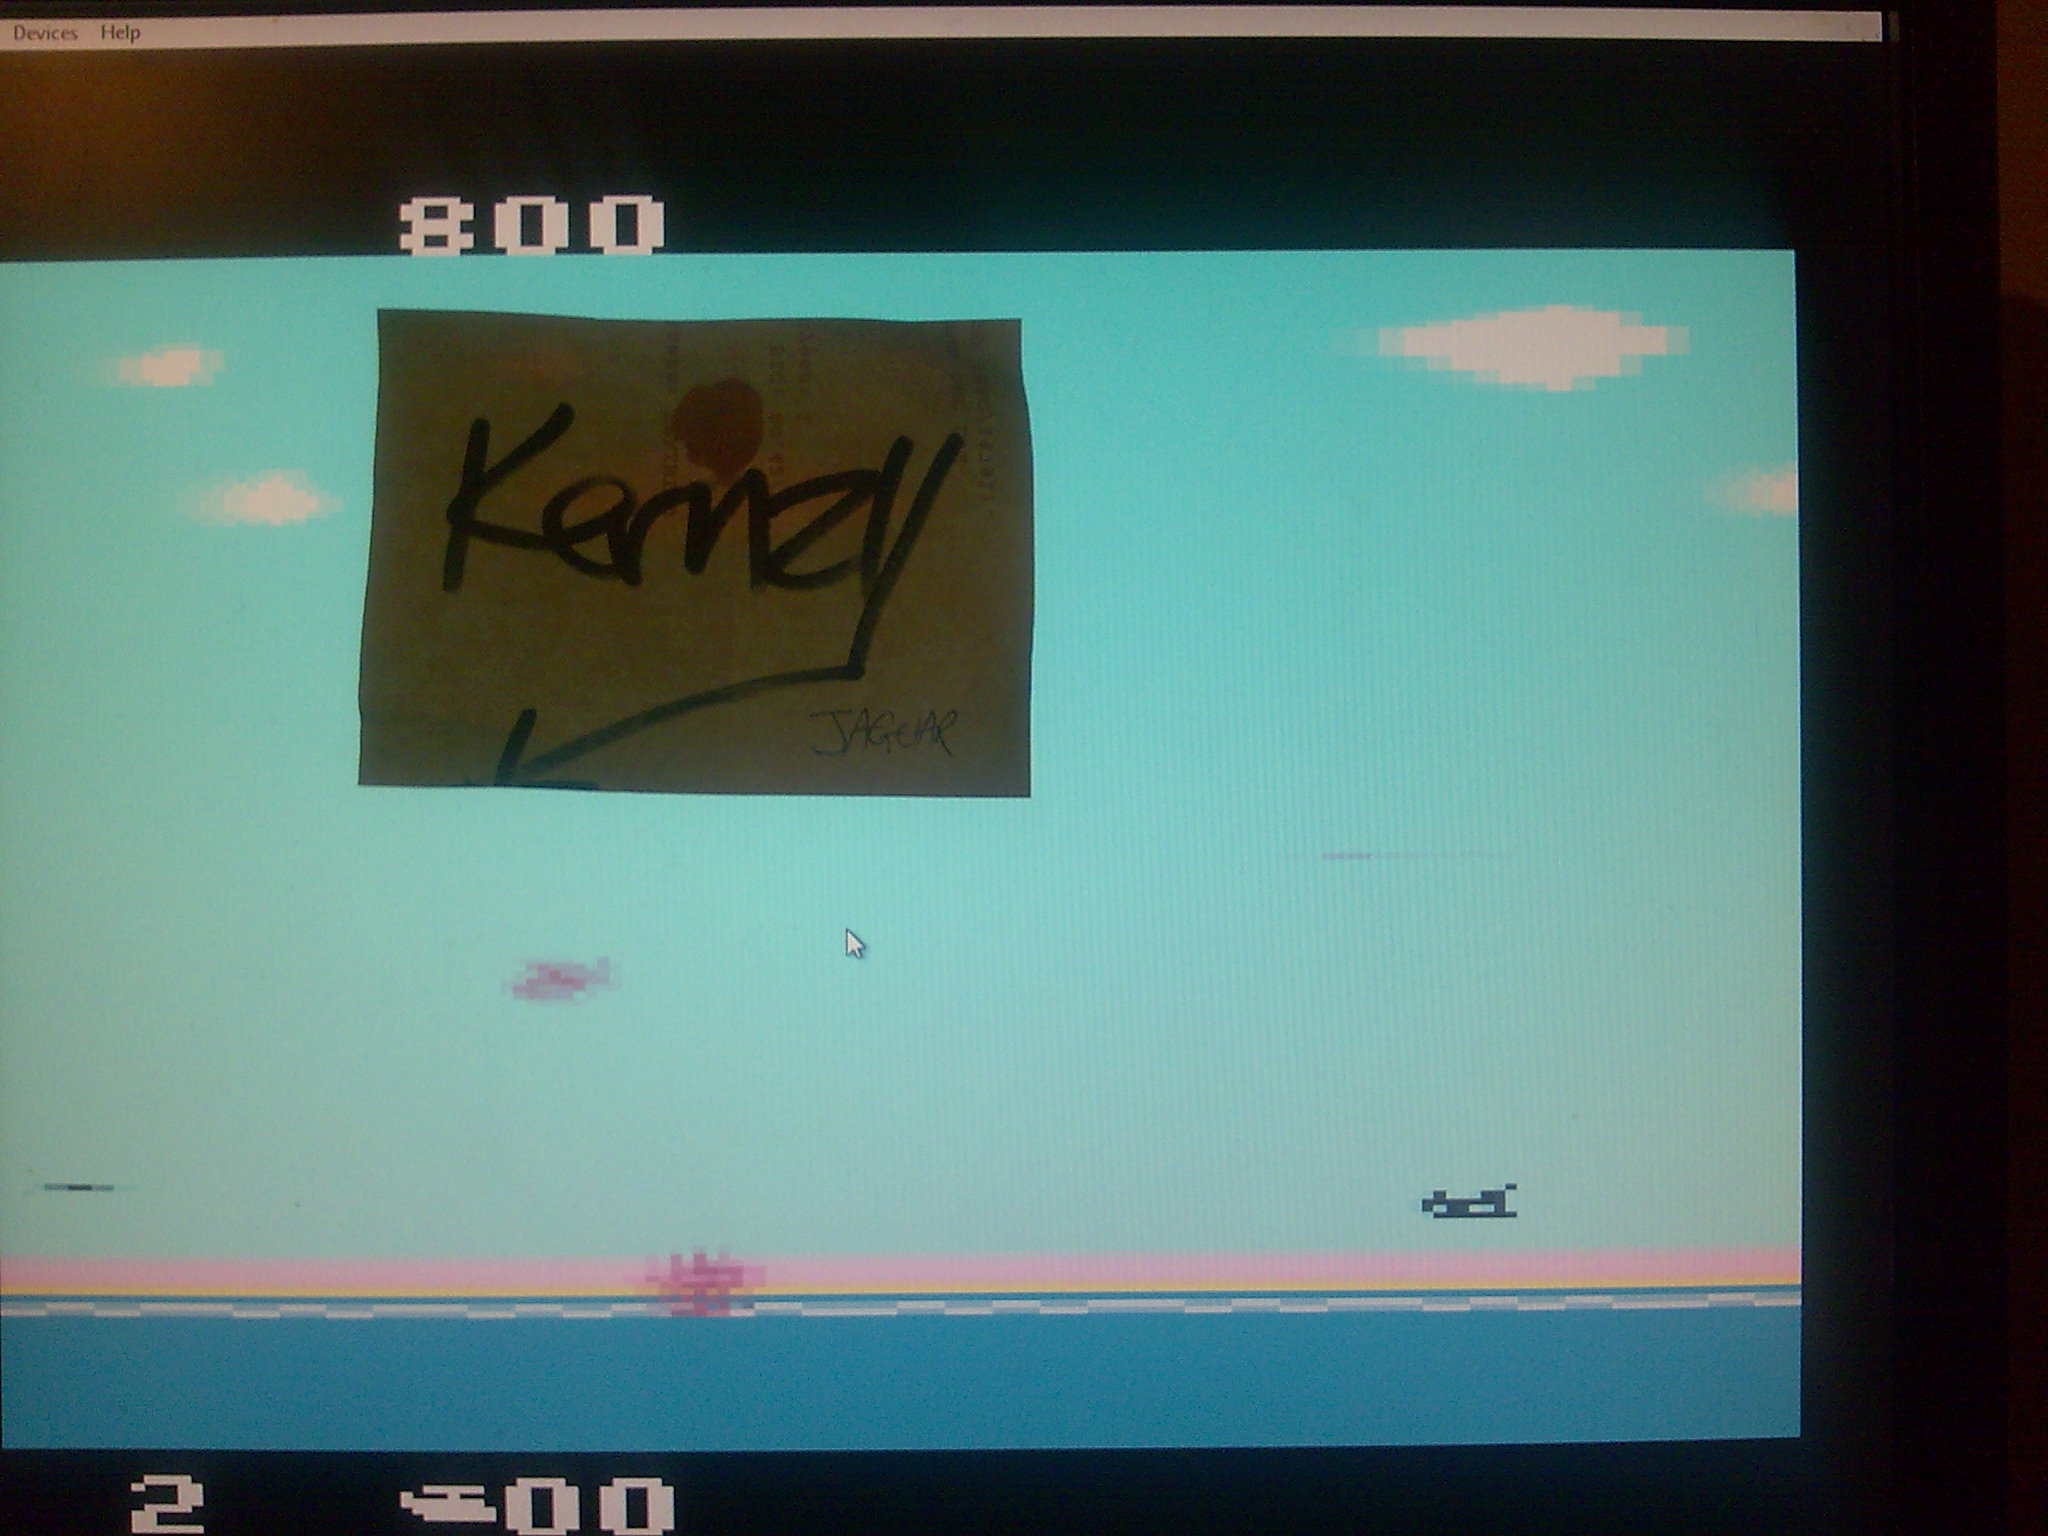 kernzy: Airwolf 3 (Atari 2600 Emulated Novice/B Mode) 800 points on 2014-10-16 19:43:36